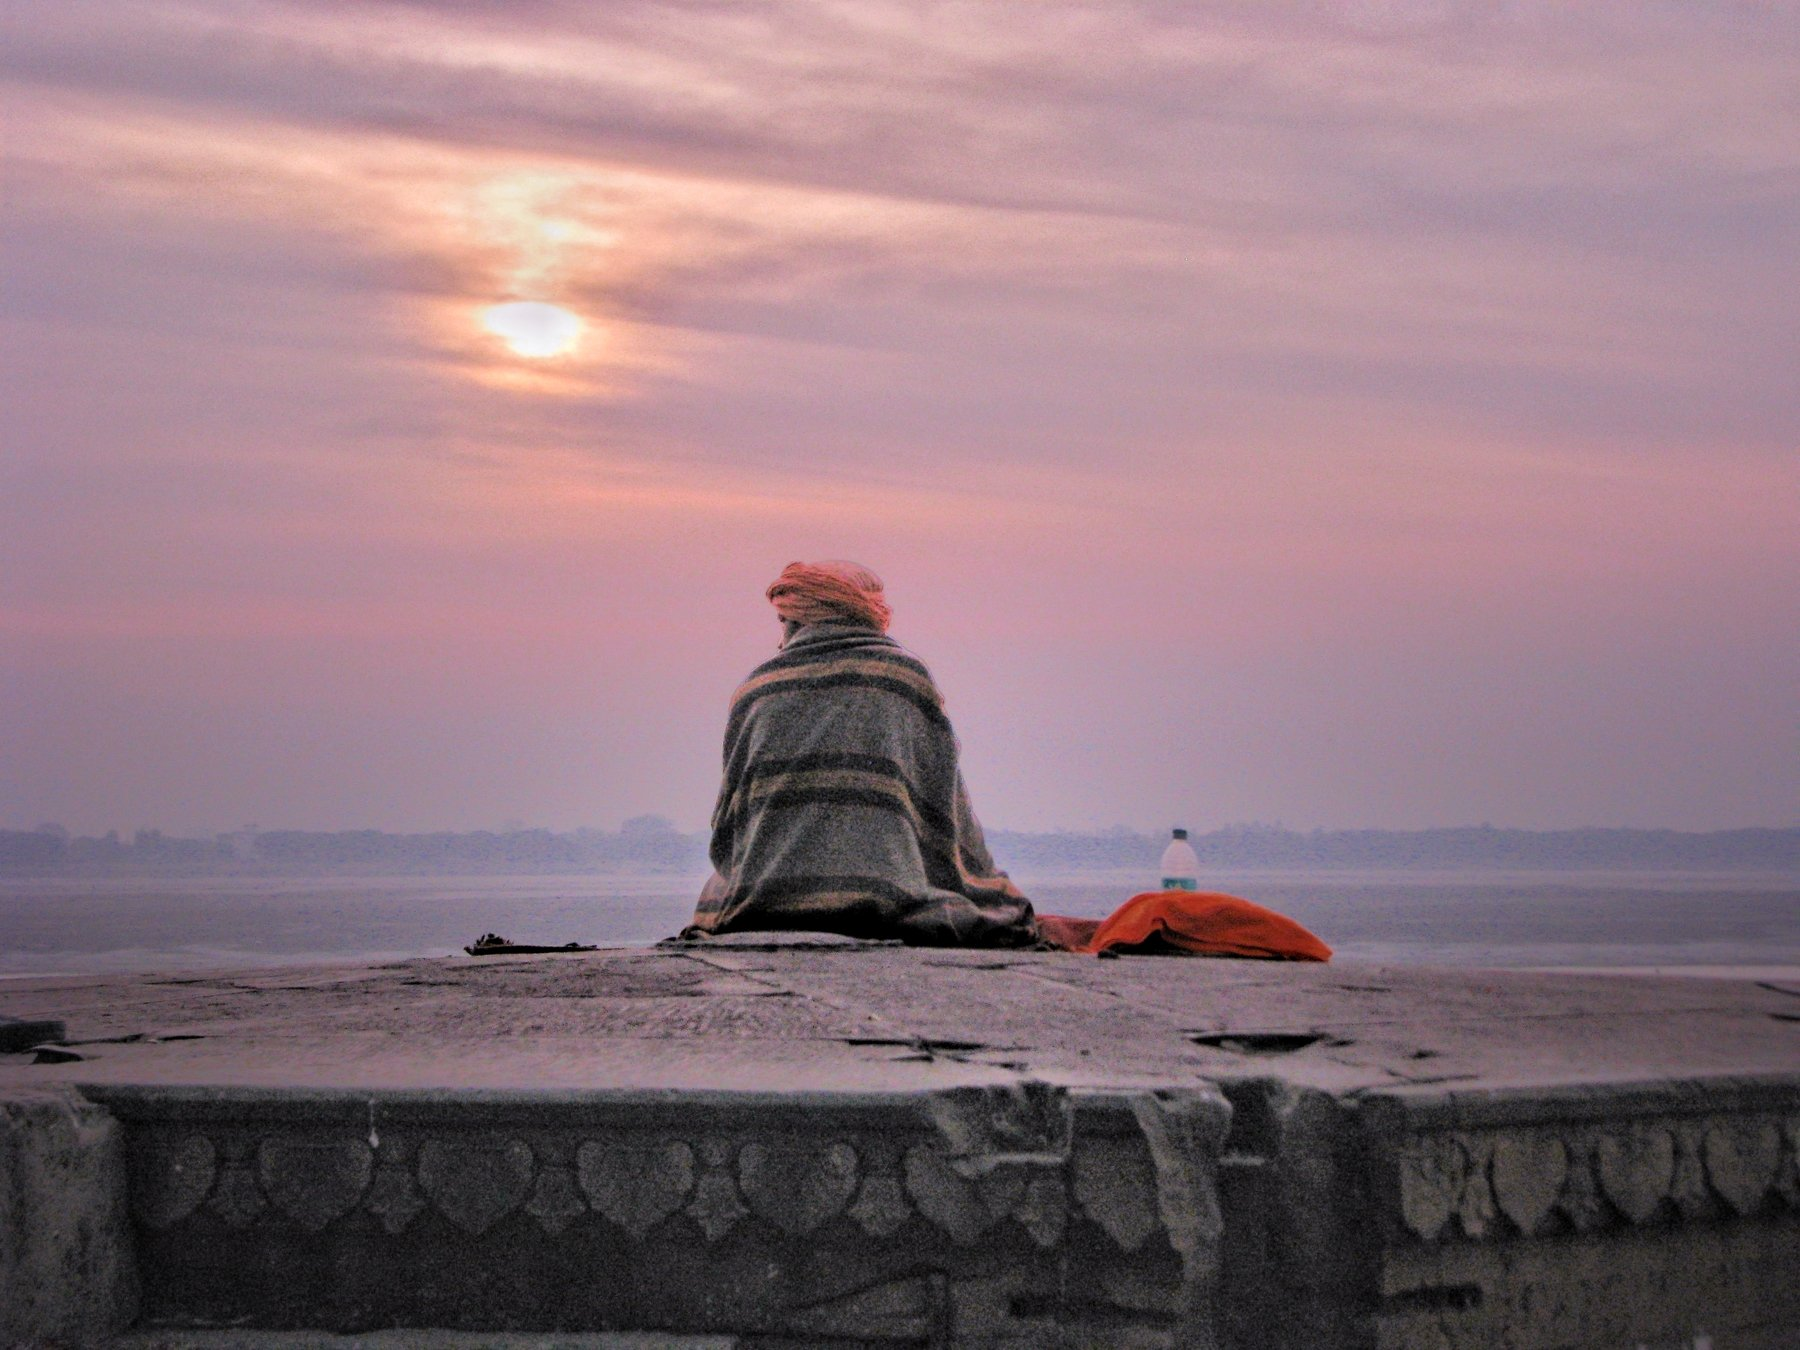 Varanasi,Kashi,Banaras,holy city,sunrise,sun,man,young monk, people, Dhiraj Goswami, GOSWAMI DHIRAJ